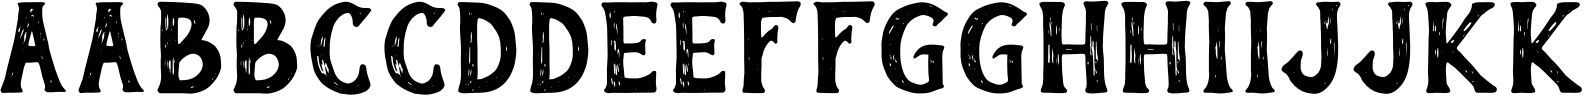 Mightype Bold Serif Font